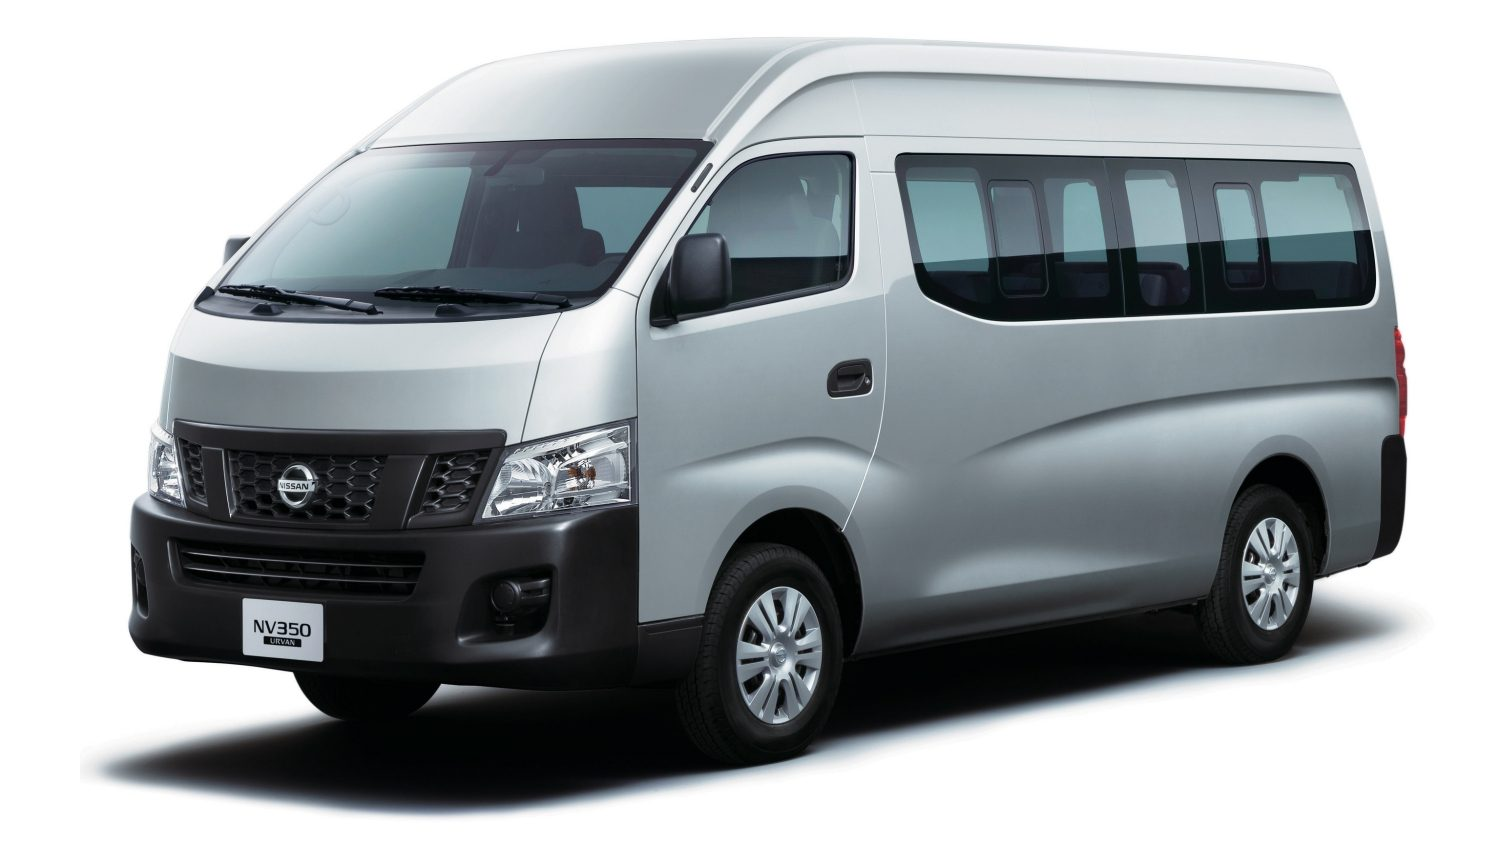 nissan nv350 urvan 15 seaters philippines. Black Bedroom Furniture Sets. Home Design Ideas